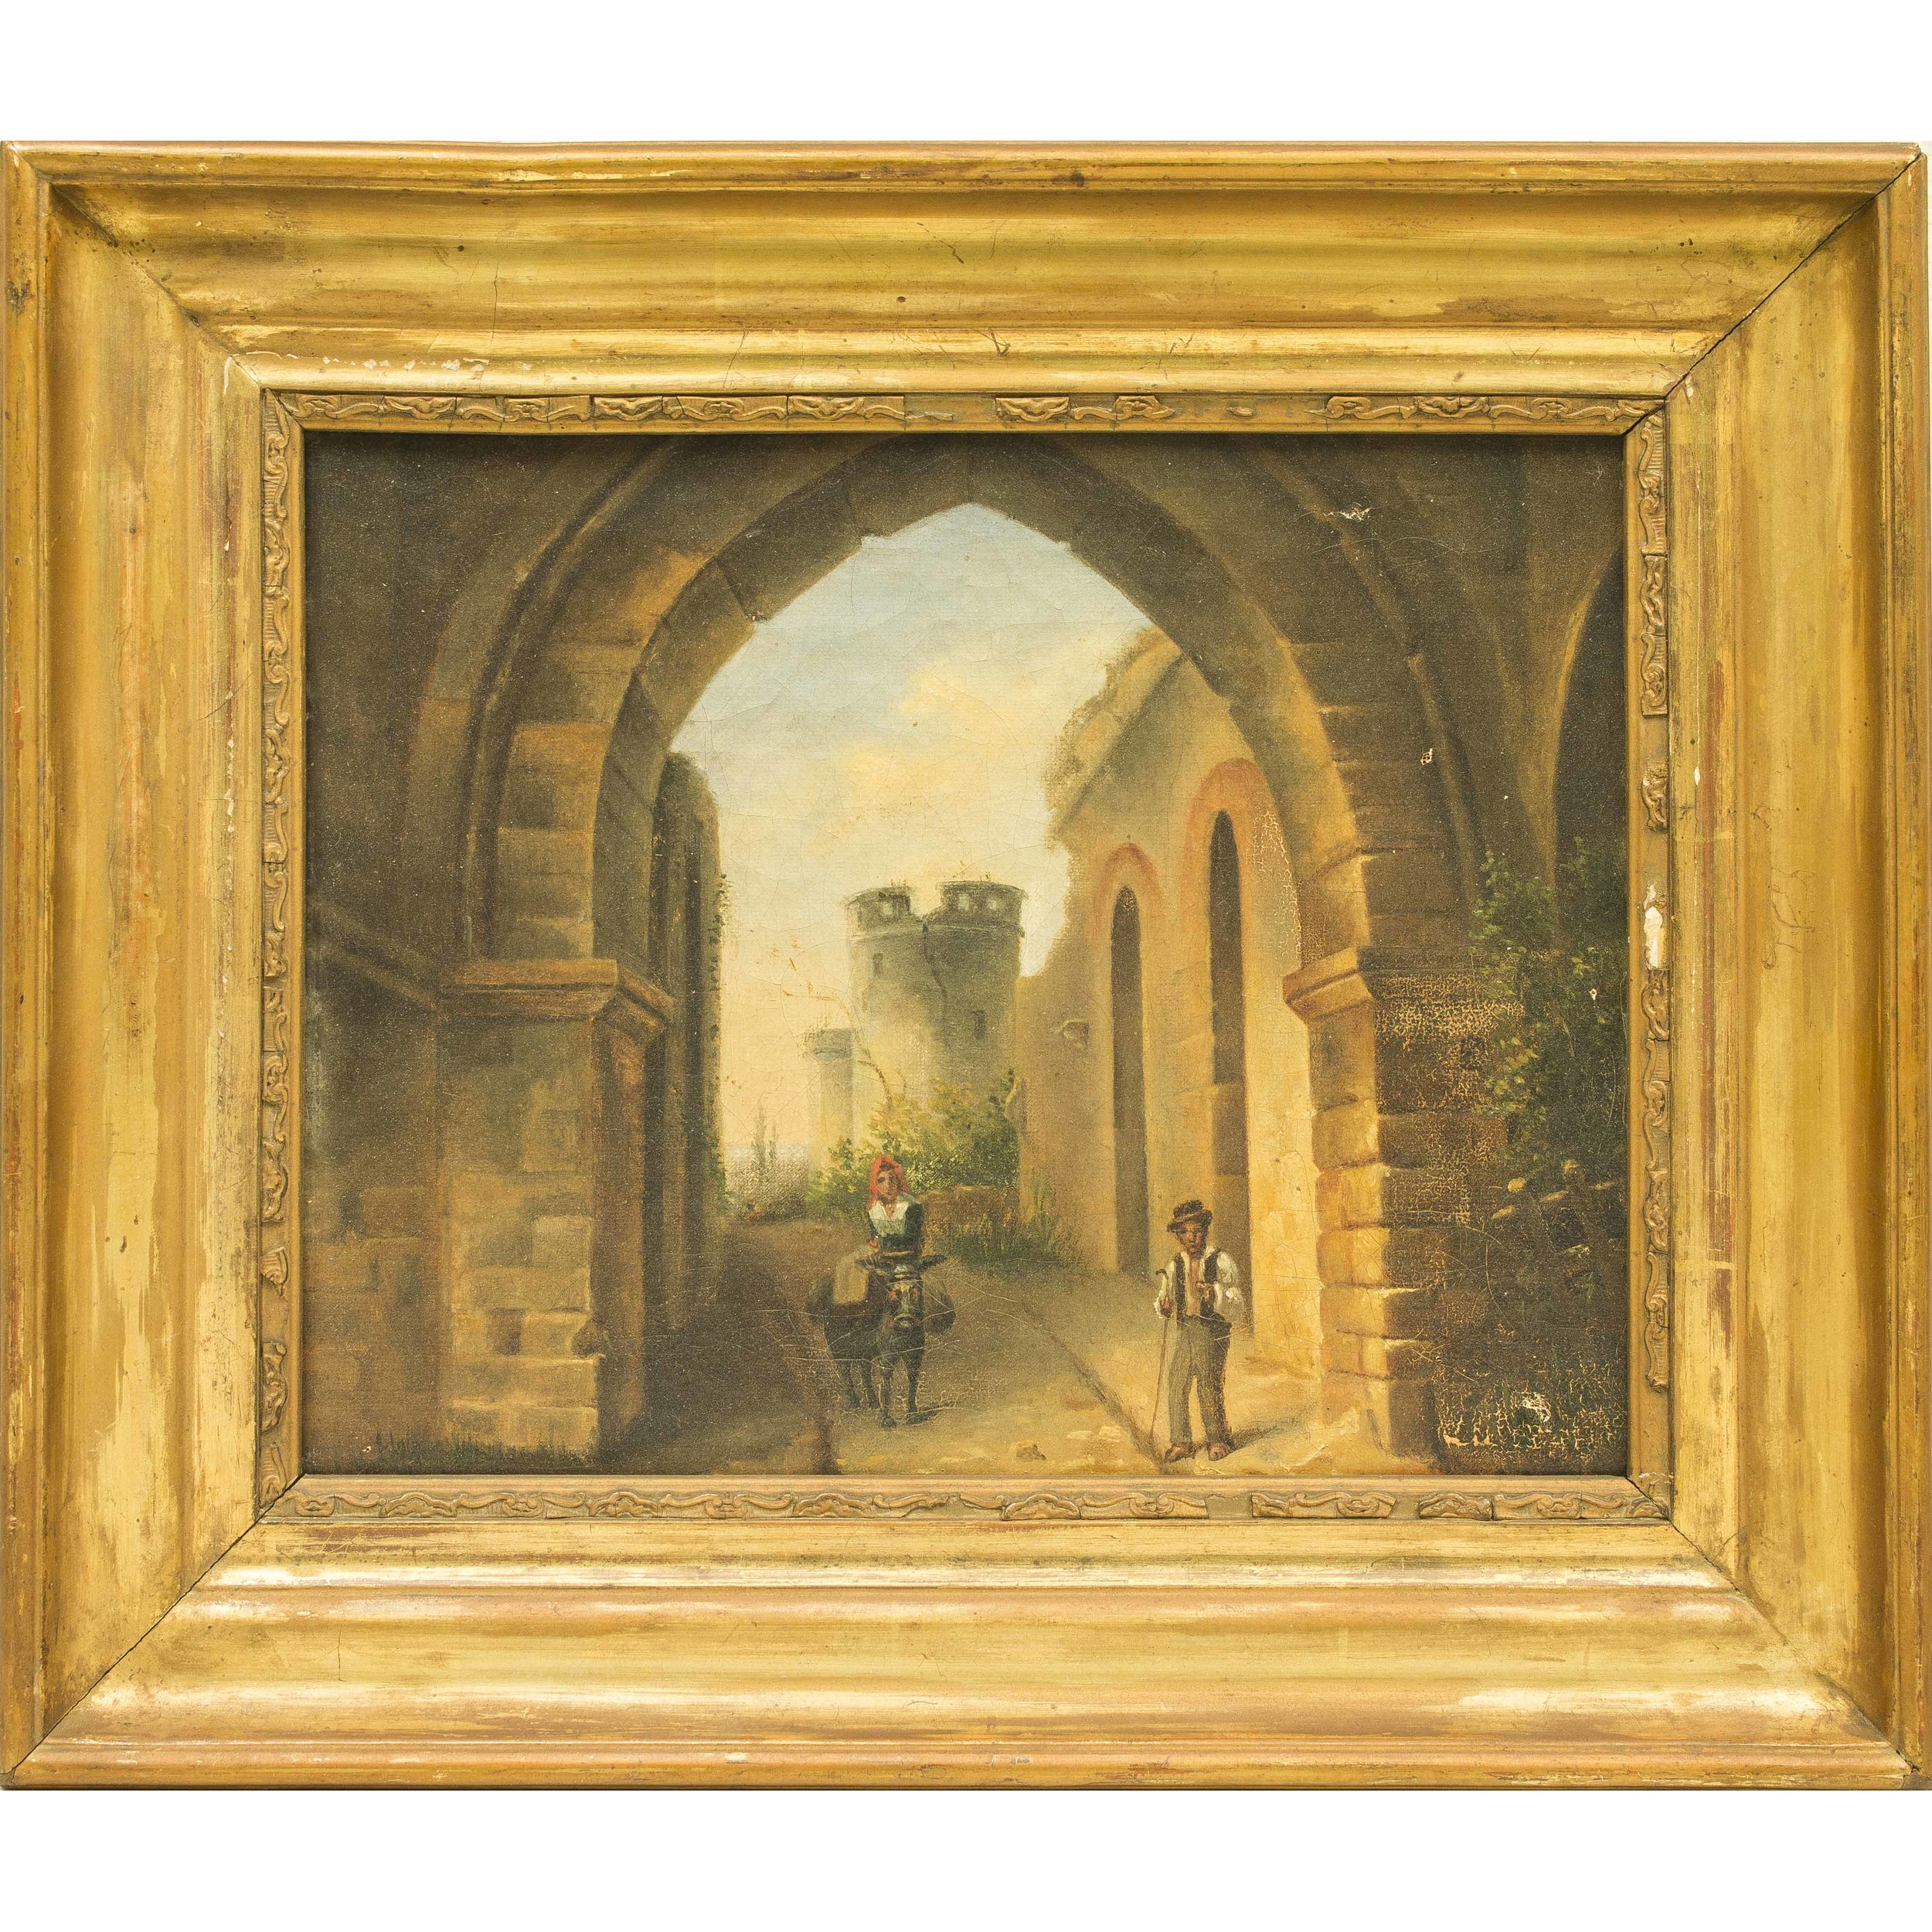 Genre Painting of a Rustic European Town | Witherell's Auction House